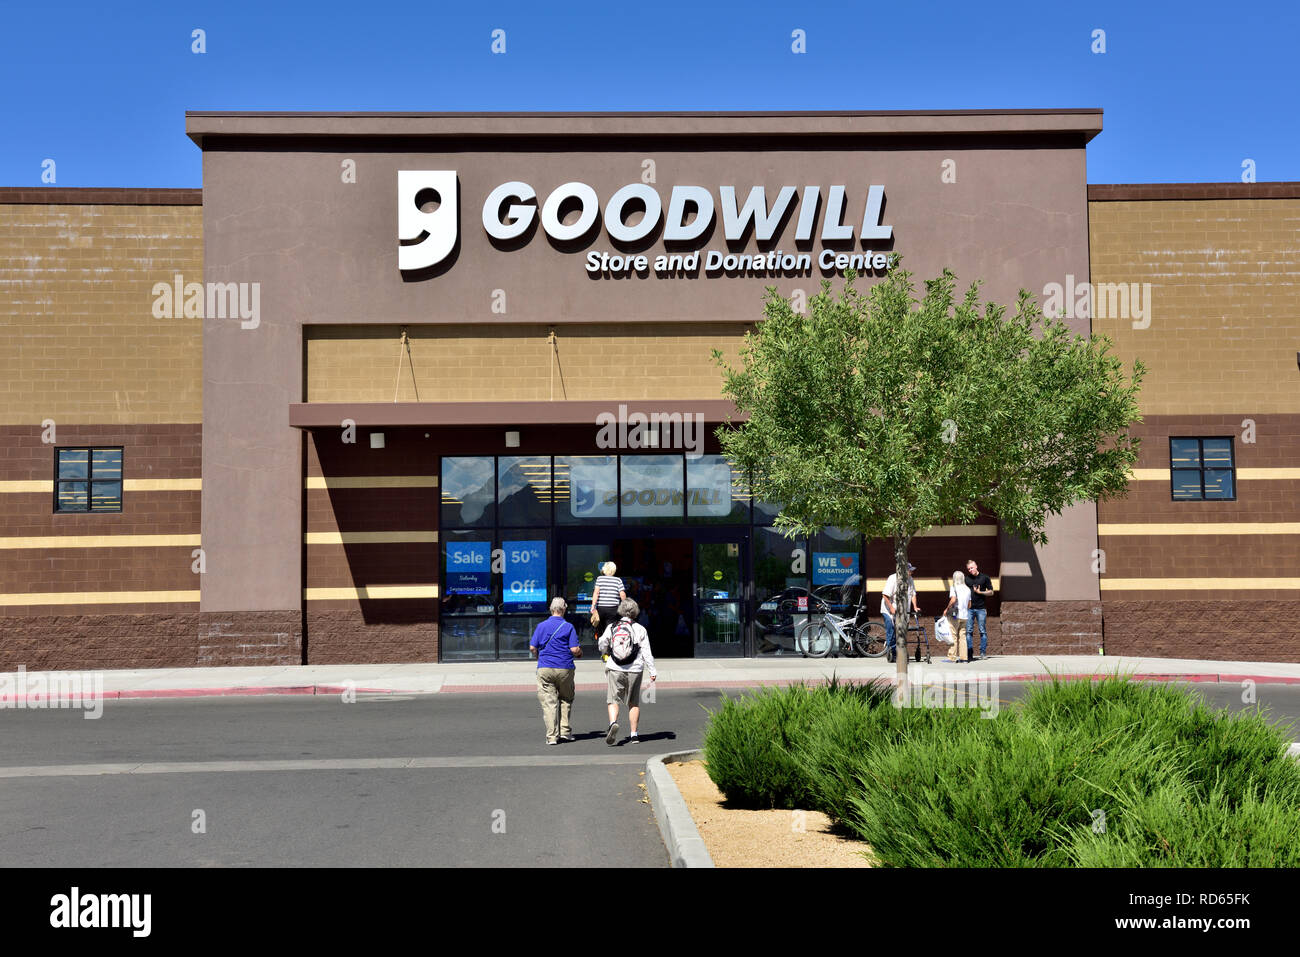 Outside Goodwill store and donation center, Arizona, USA - Stock Image